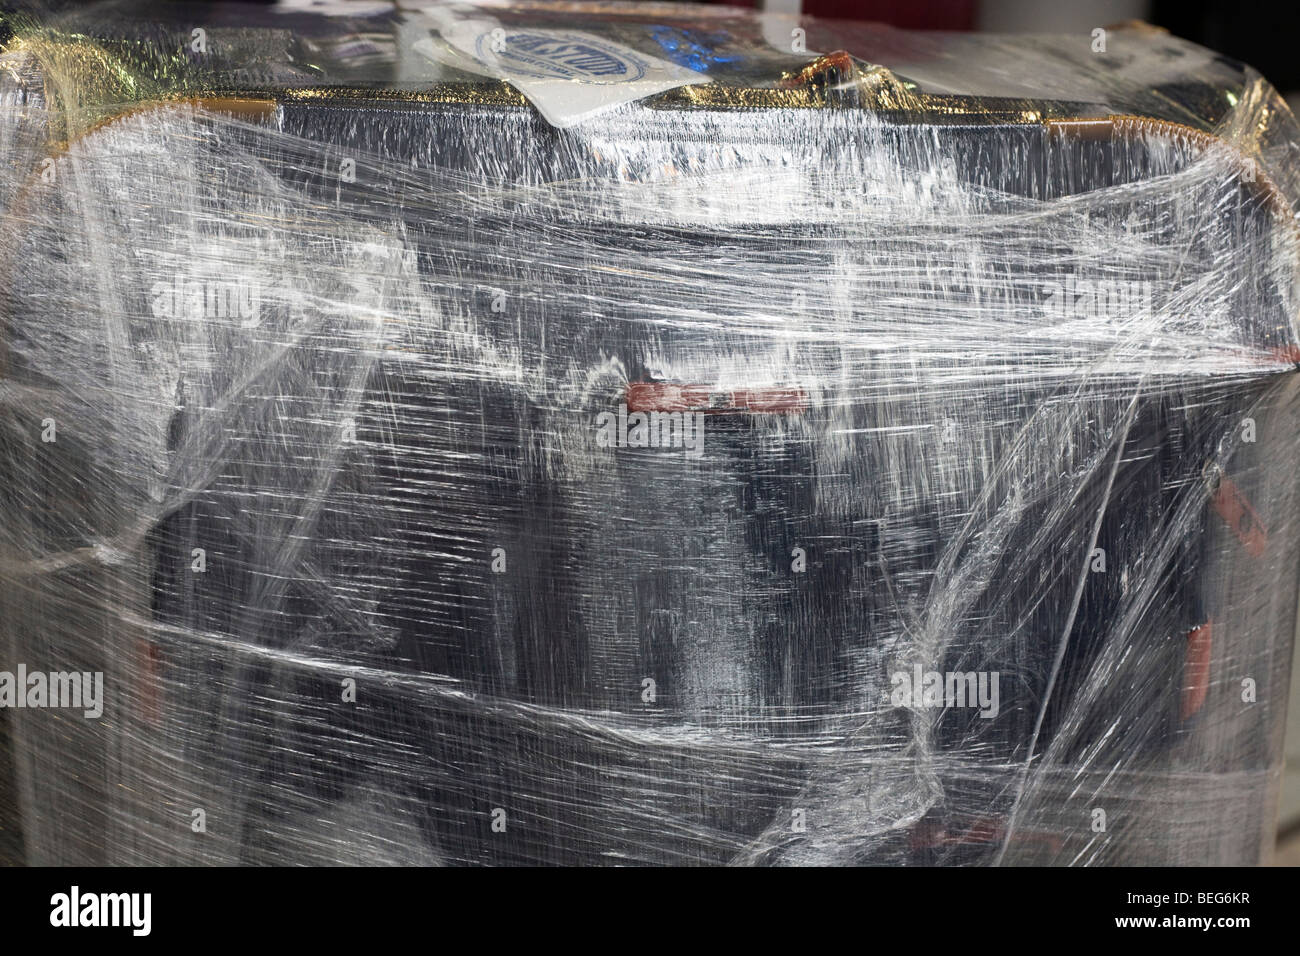 Secure shrink-wrapped baggage seen in Heathrow airport's terminal 5. - Stock Image